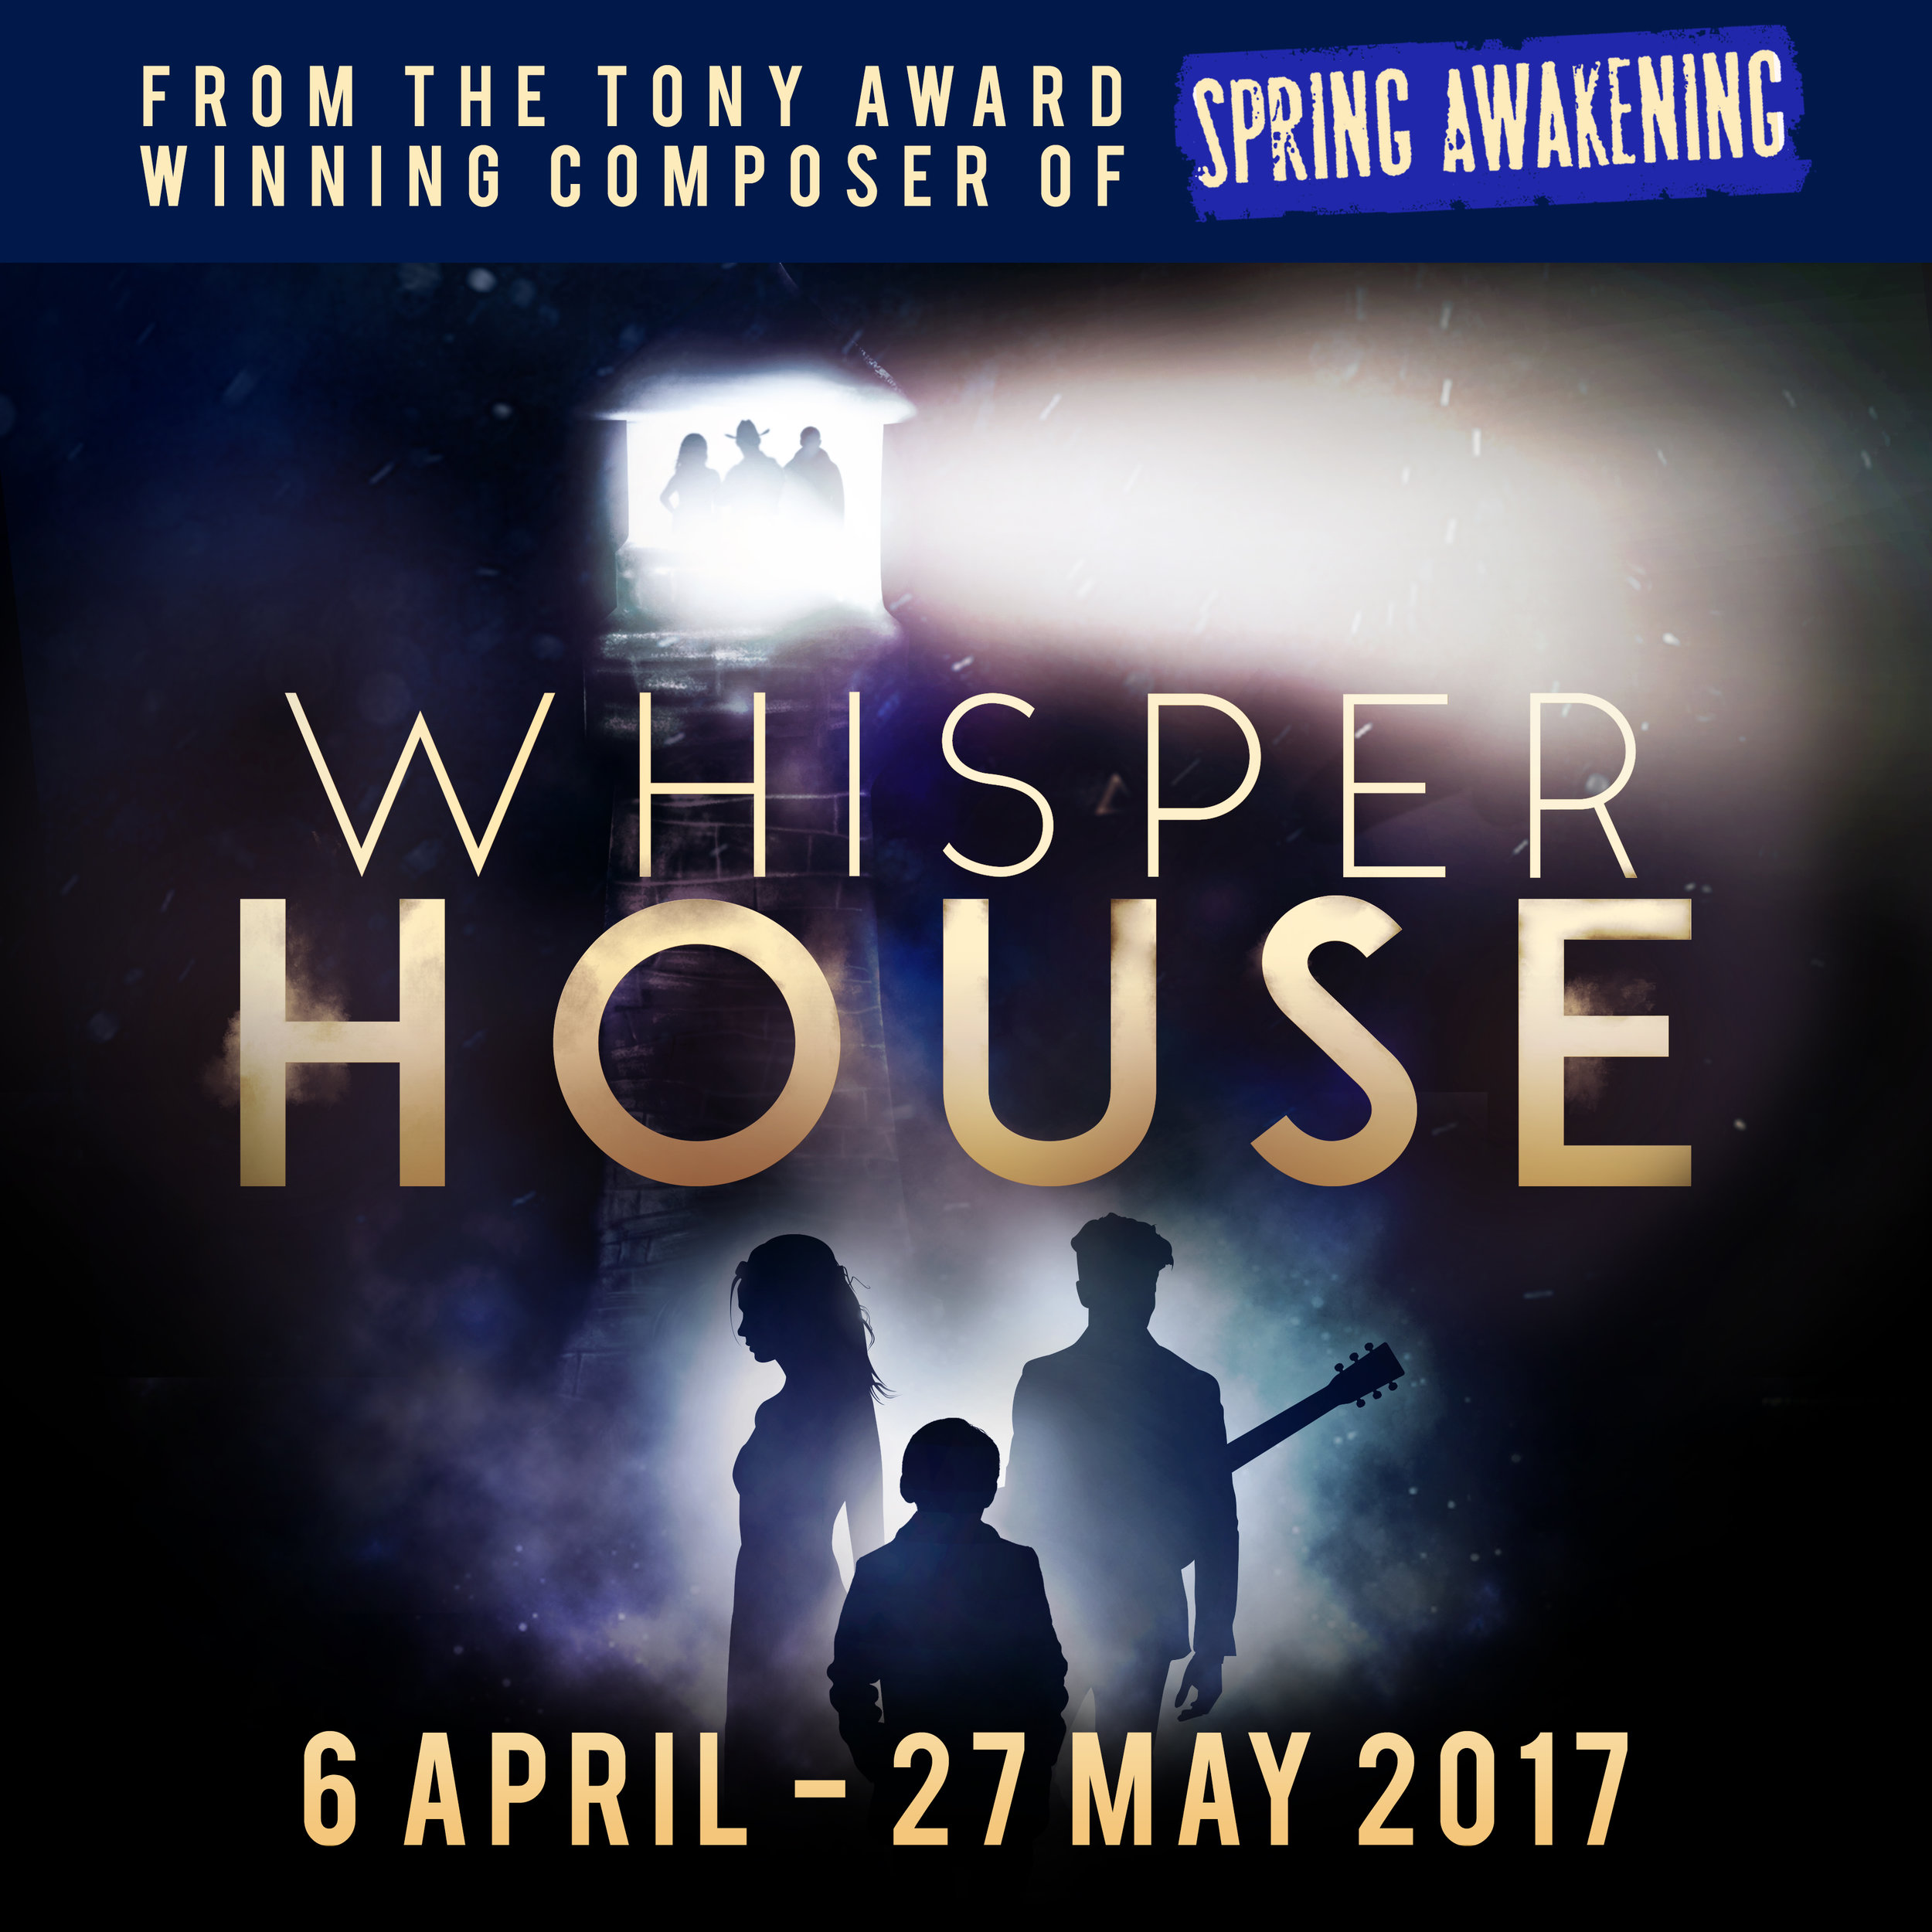 WHISPER HOUSE - APRIL/MAY 2017  ADAM IS DIRECTING THE EUROPEAN PREMIERE OF THE NEW MUSICAL FROM THE COMPOSER OF SPRING AWAKENING. STARRING SIMON BAILEY, NICHOLAS GOH, SIMON LIPKIN, NIAMH PERRY and Diane Pillkington  MORE INFO